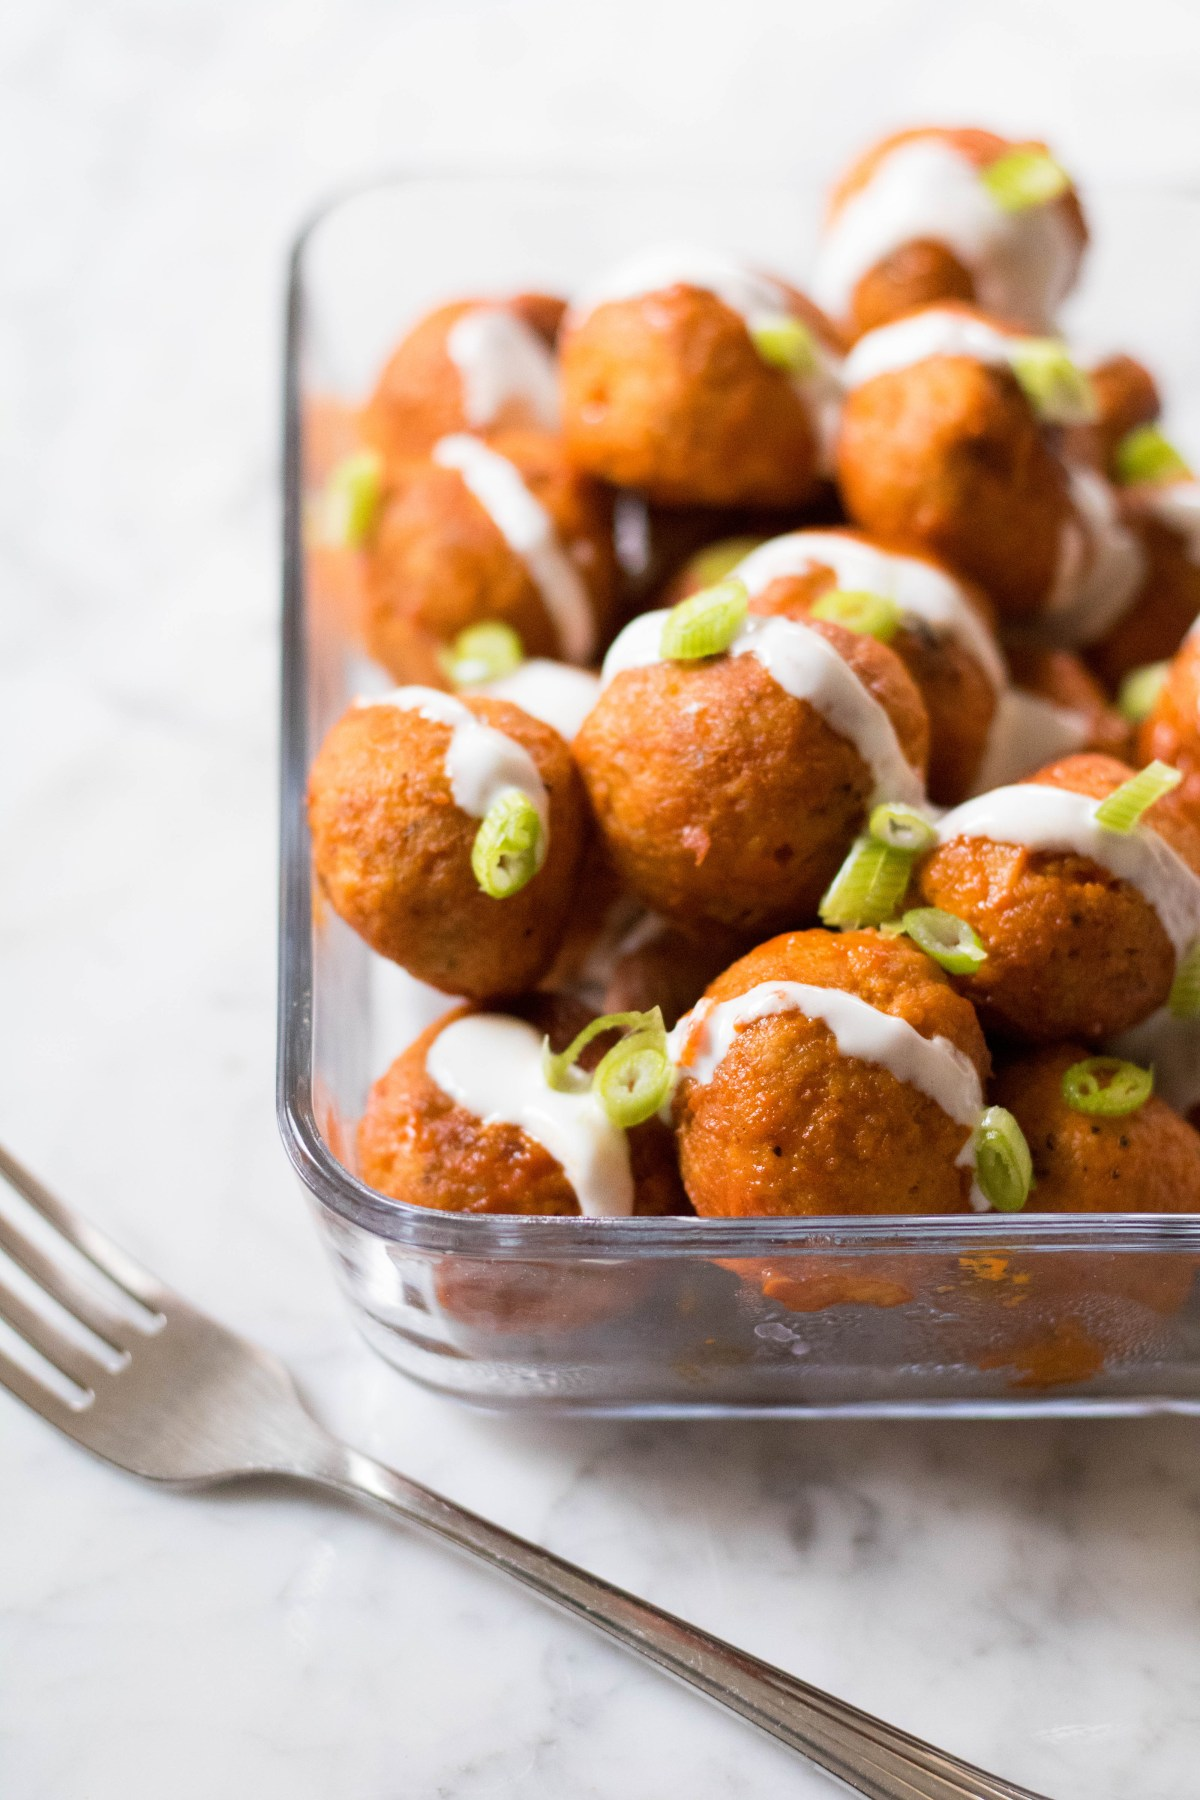 Container of healthy baked buffalo chicken meatballs.